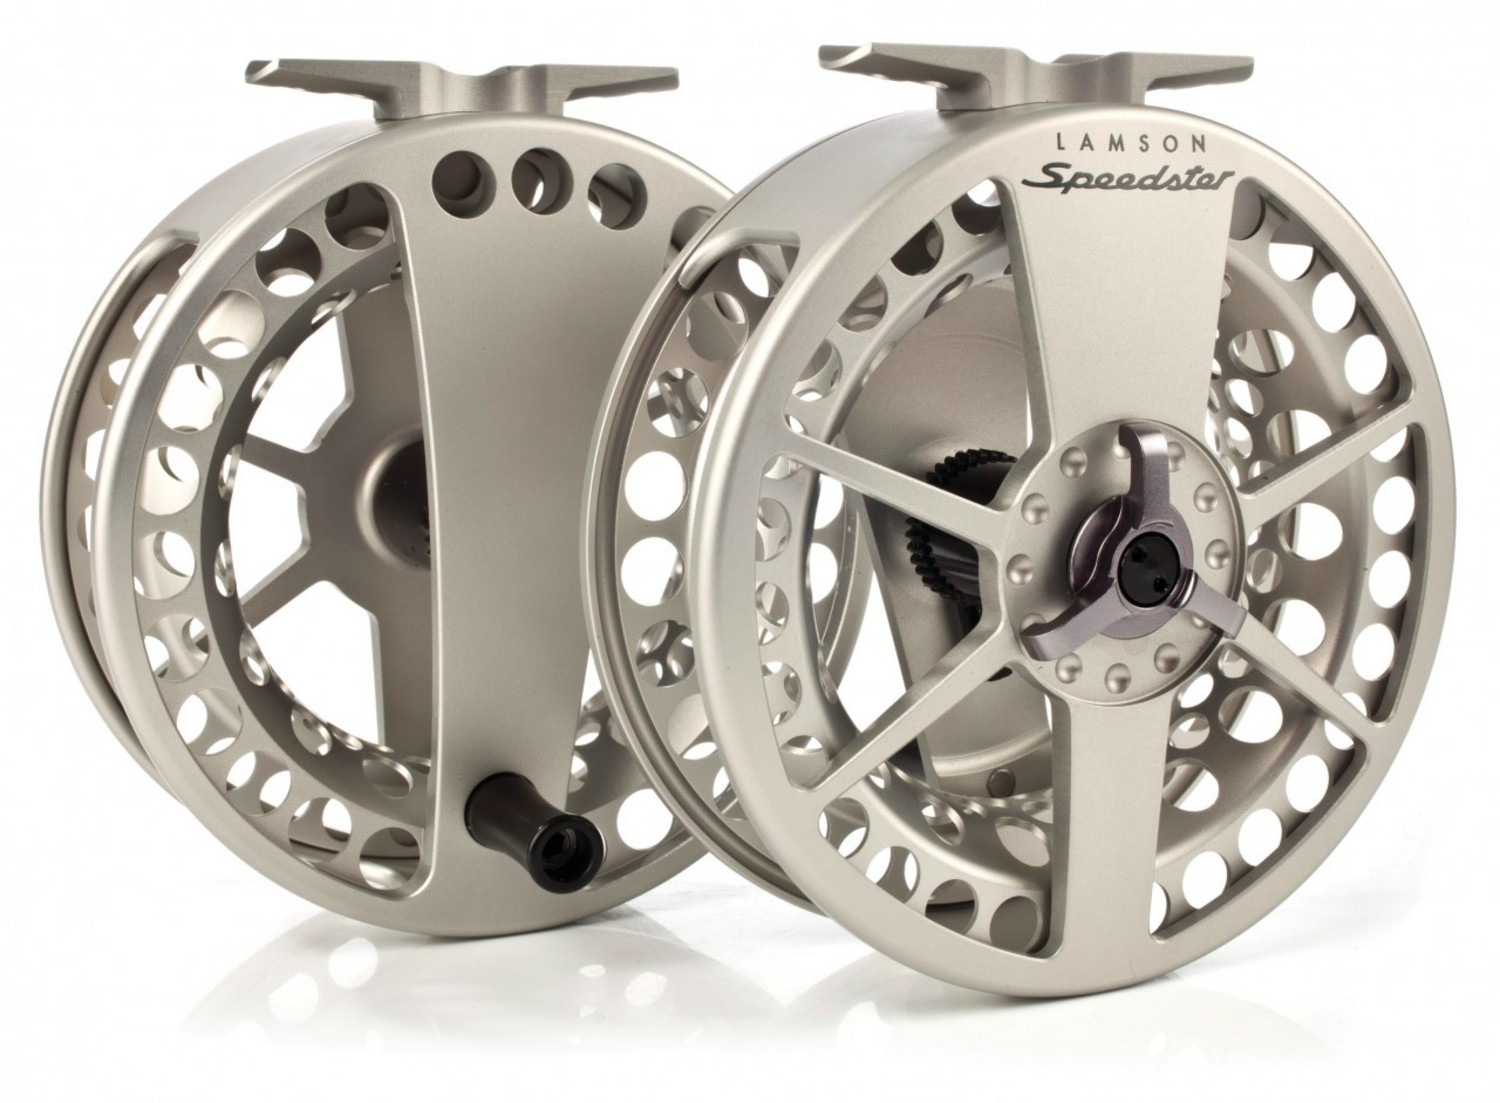 Lamson Speedster 1 Fly Reel